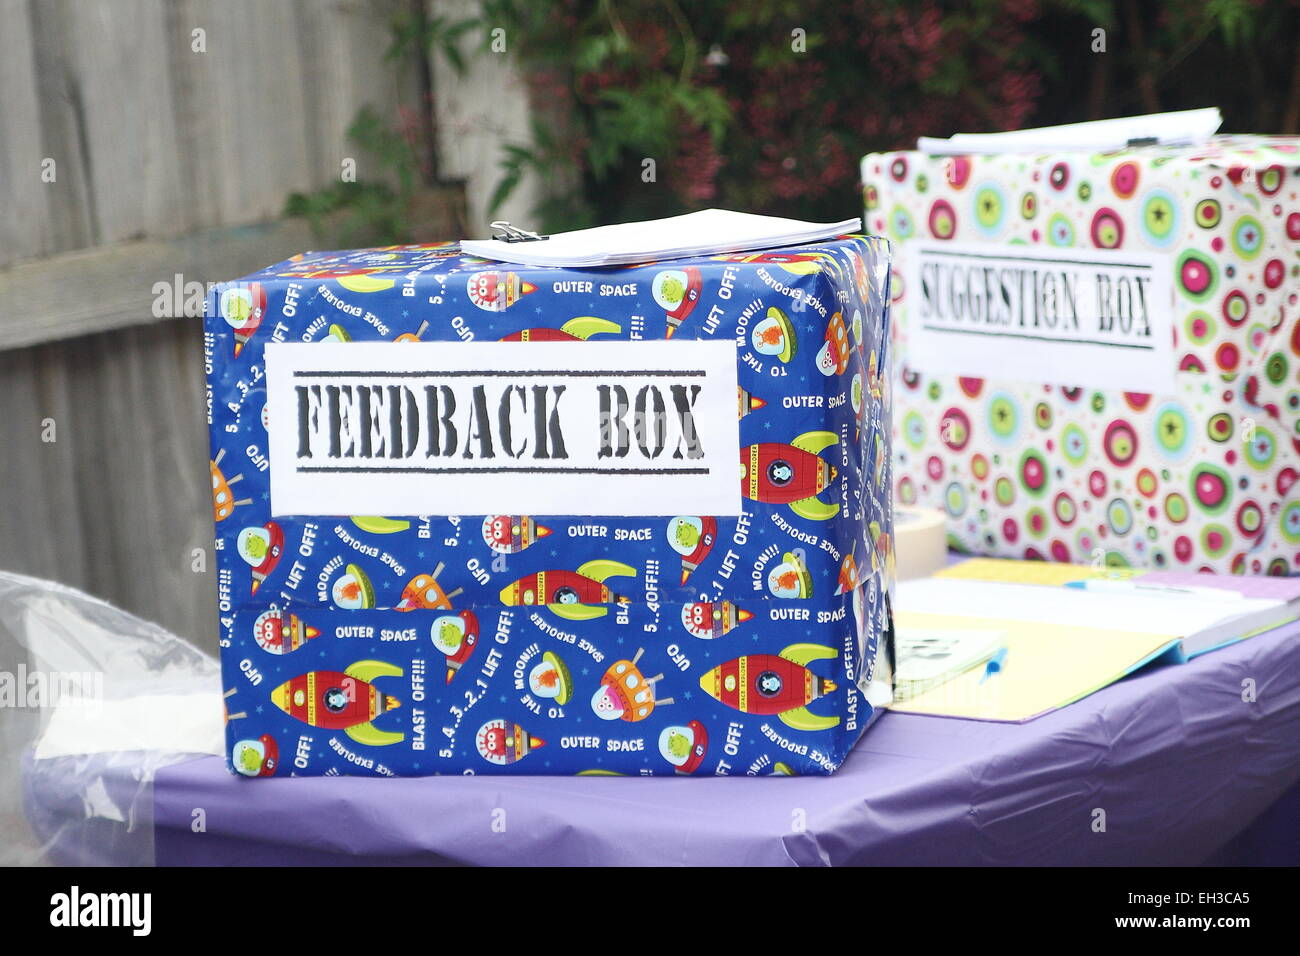 Feedback and Suggestion box - Stock Image